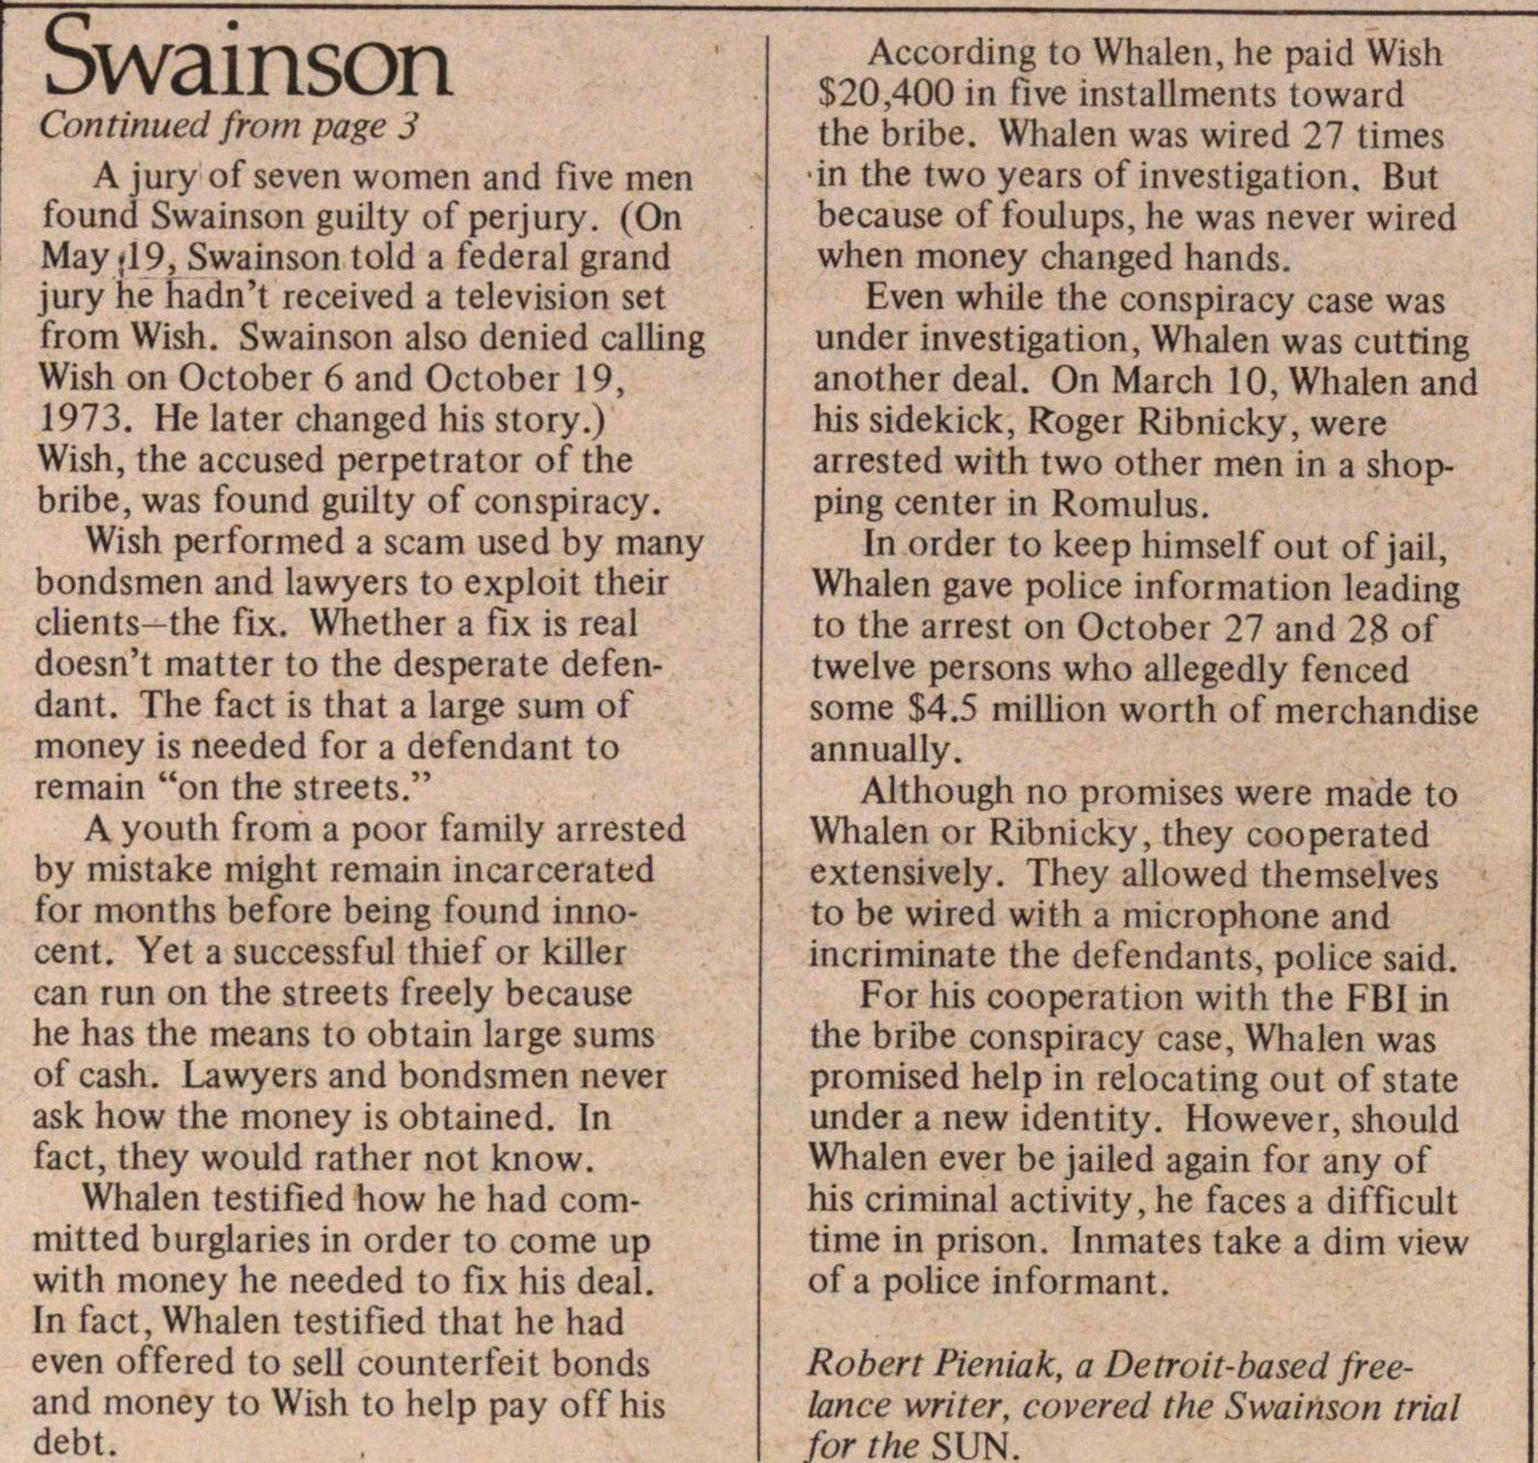 Swainson's Accuser; The Life & Times Of John J. Whalen image